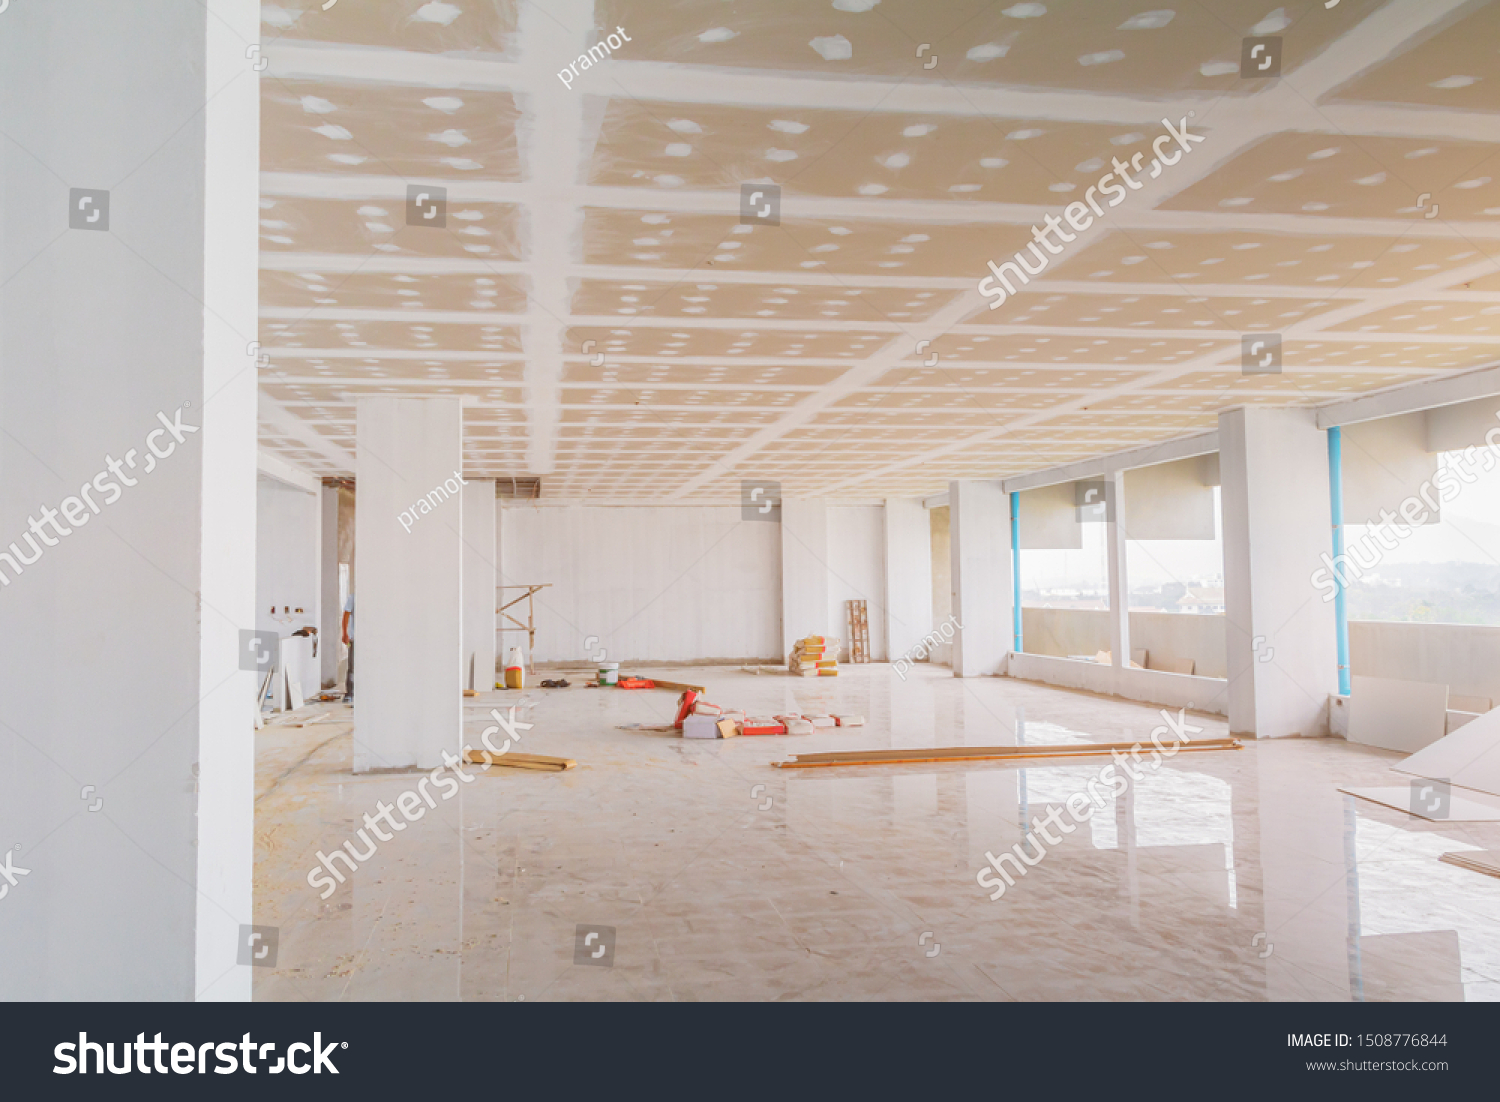 Gypsum Board Ceiling Structure Plaster Mortar Stock Photo